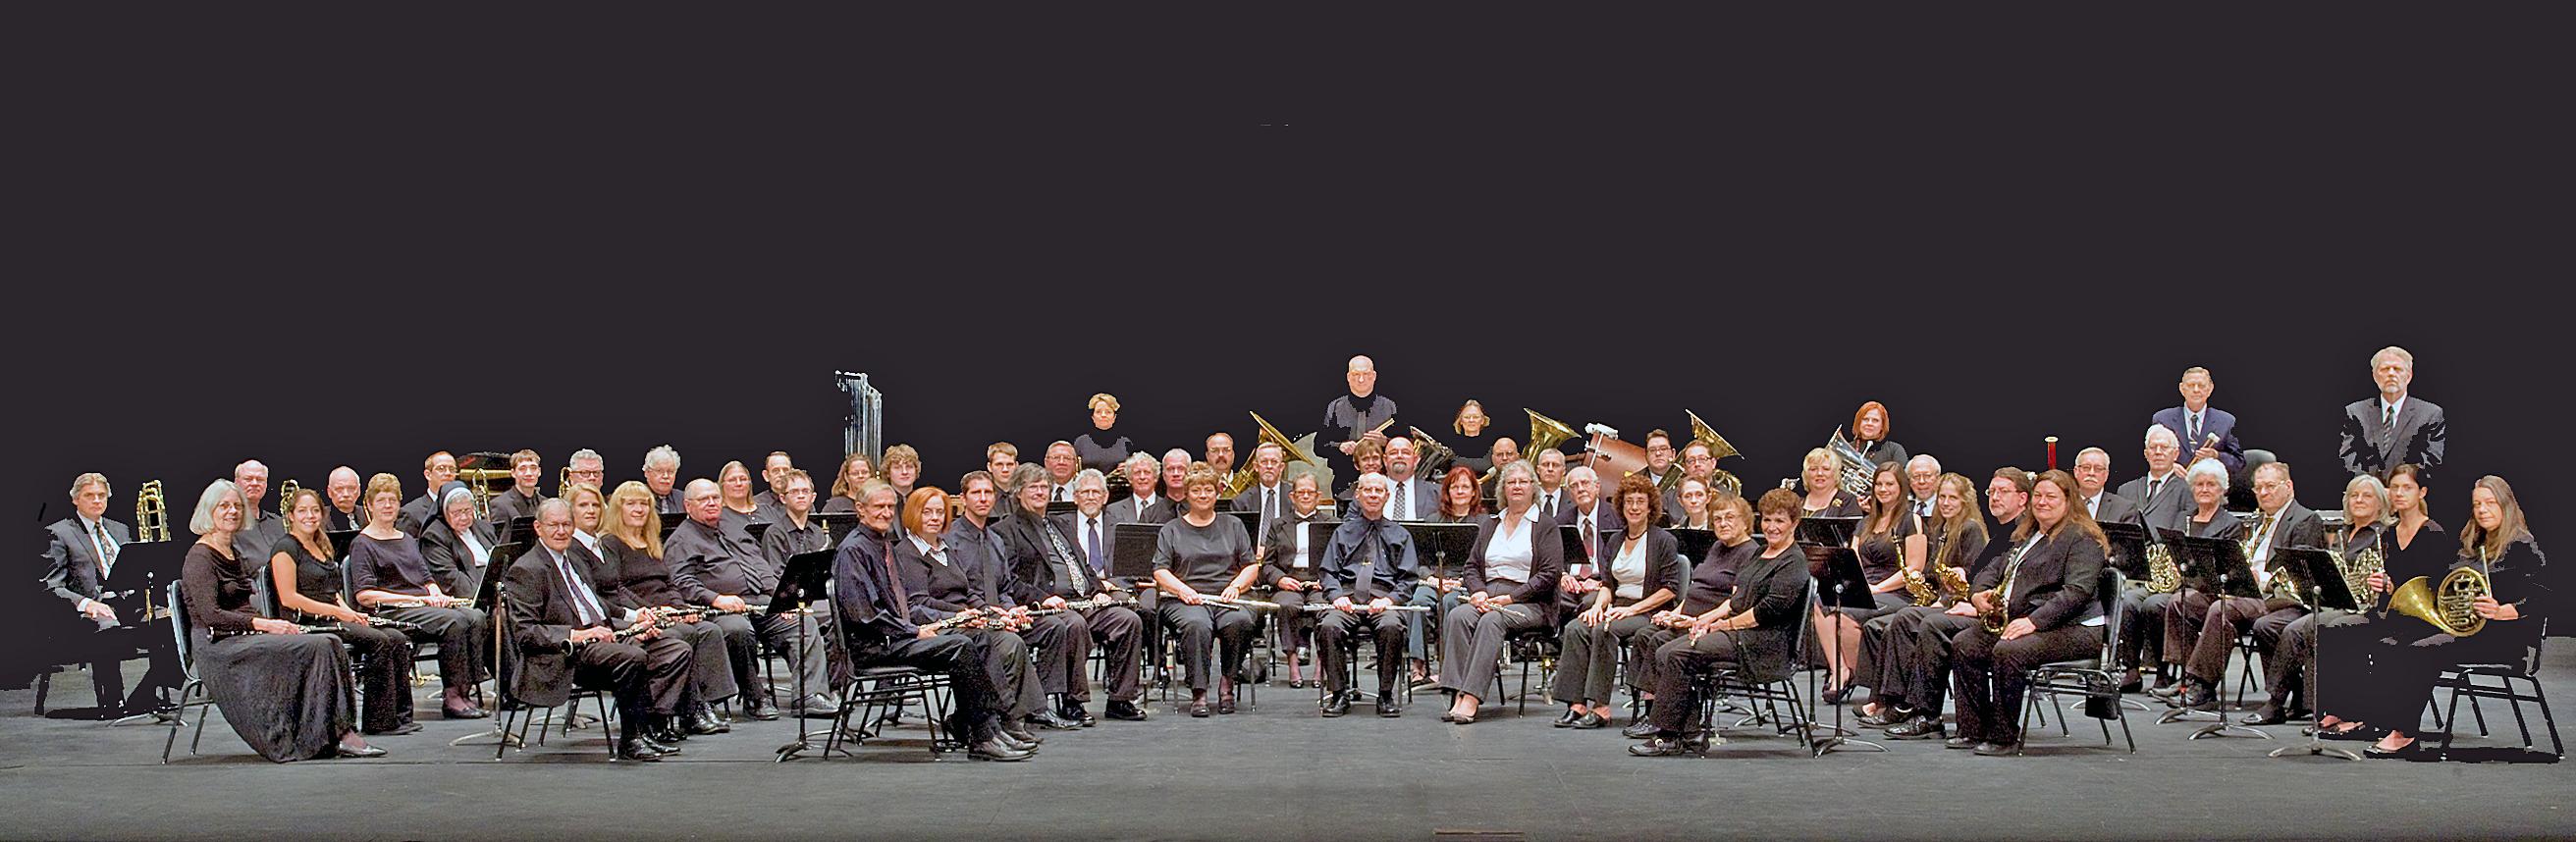 Tulsa Community Band 2013